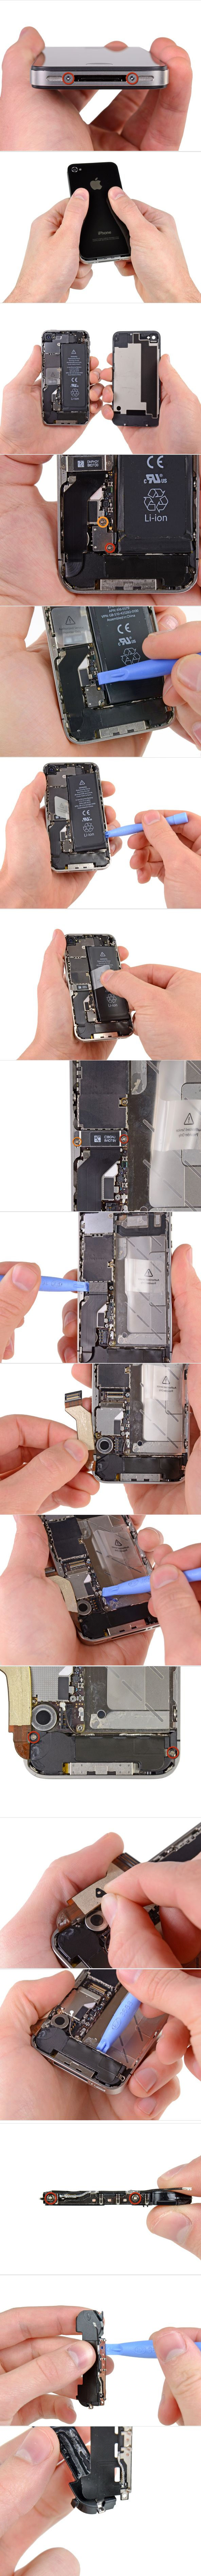 How to Fix iPhone 4 Cellular Antenna?